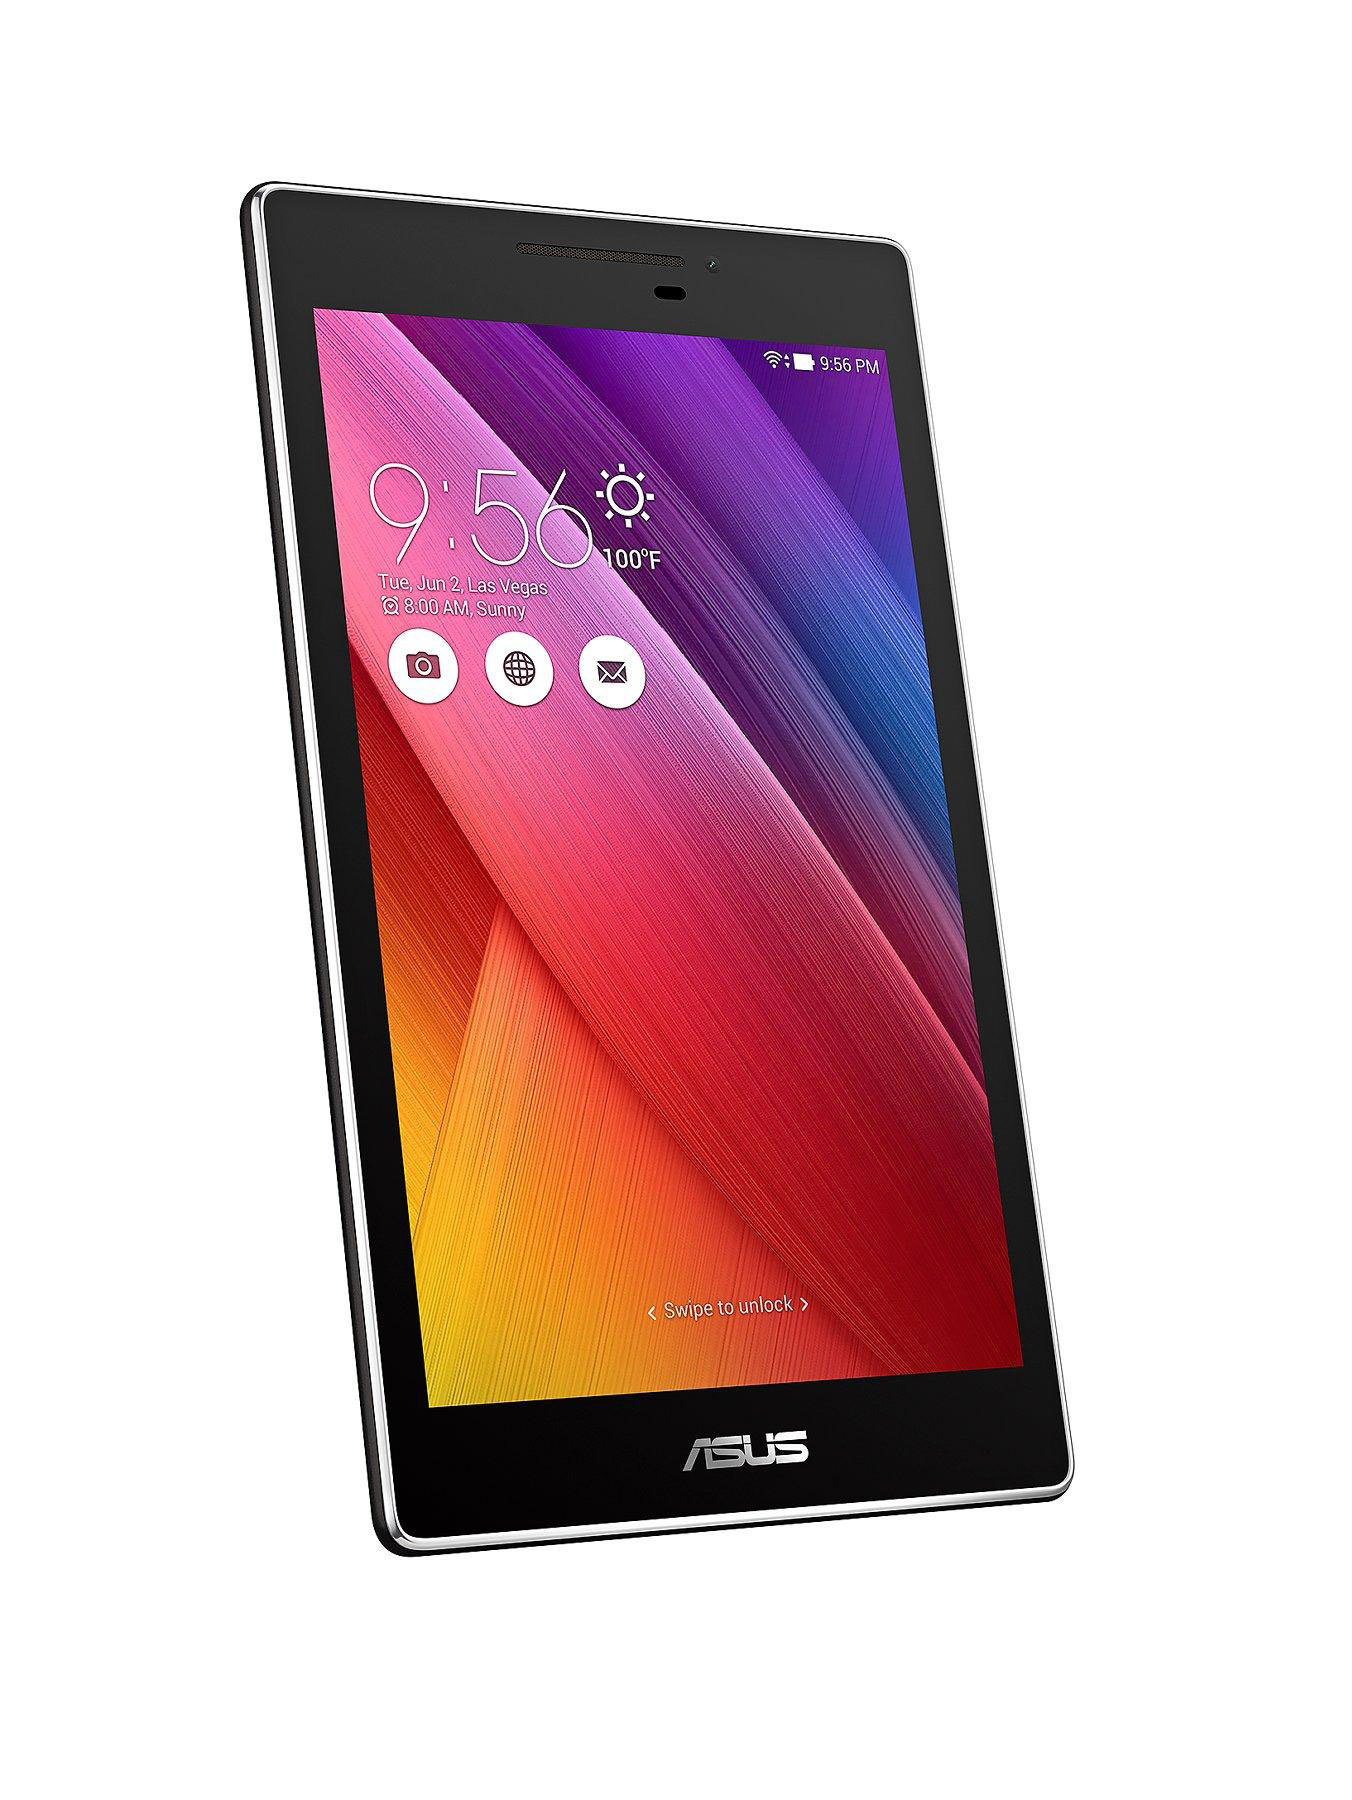 Image of Asus Z370C Intel Sofia 1GB RAM 16GB Storage 7 Tablet